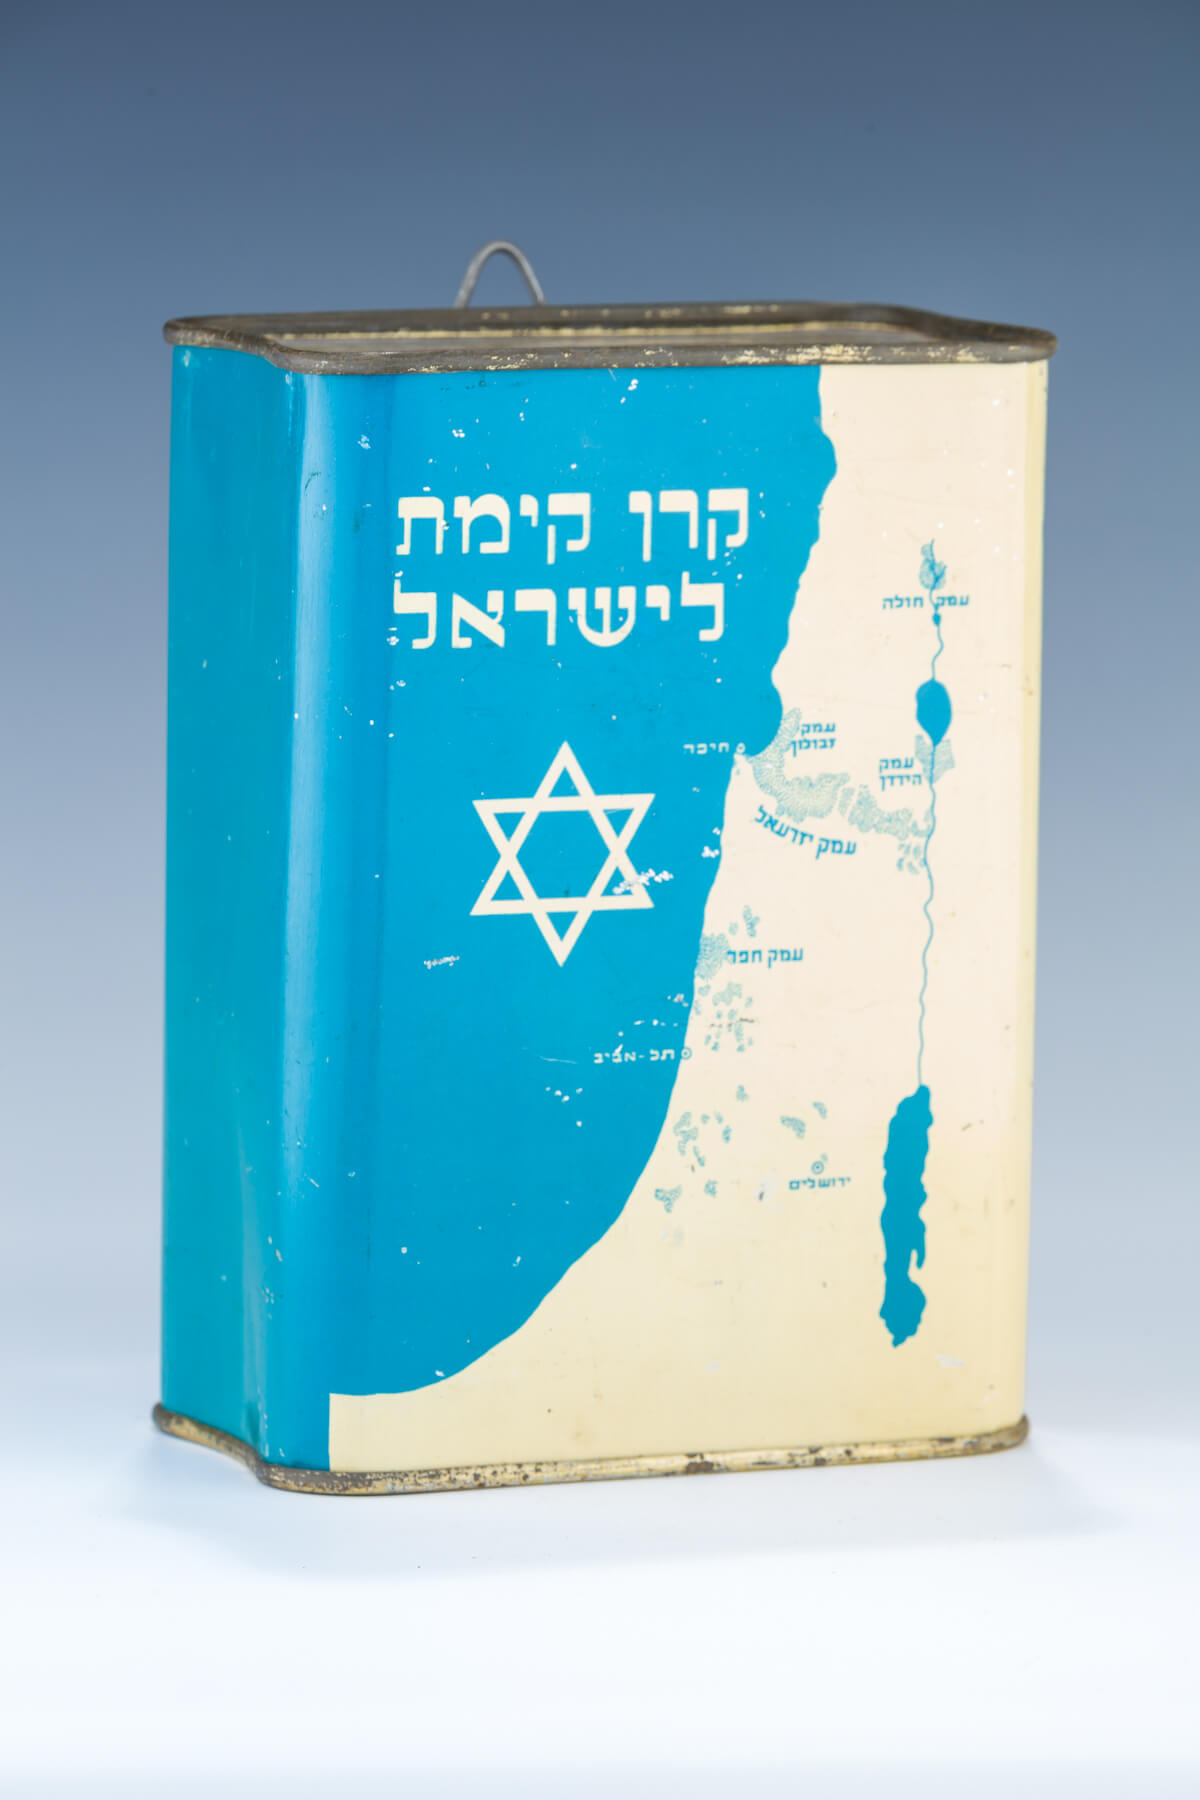 15. An Early Jnf/Kkl Collection Box